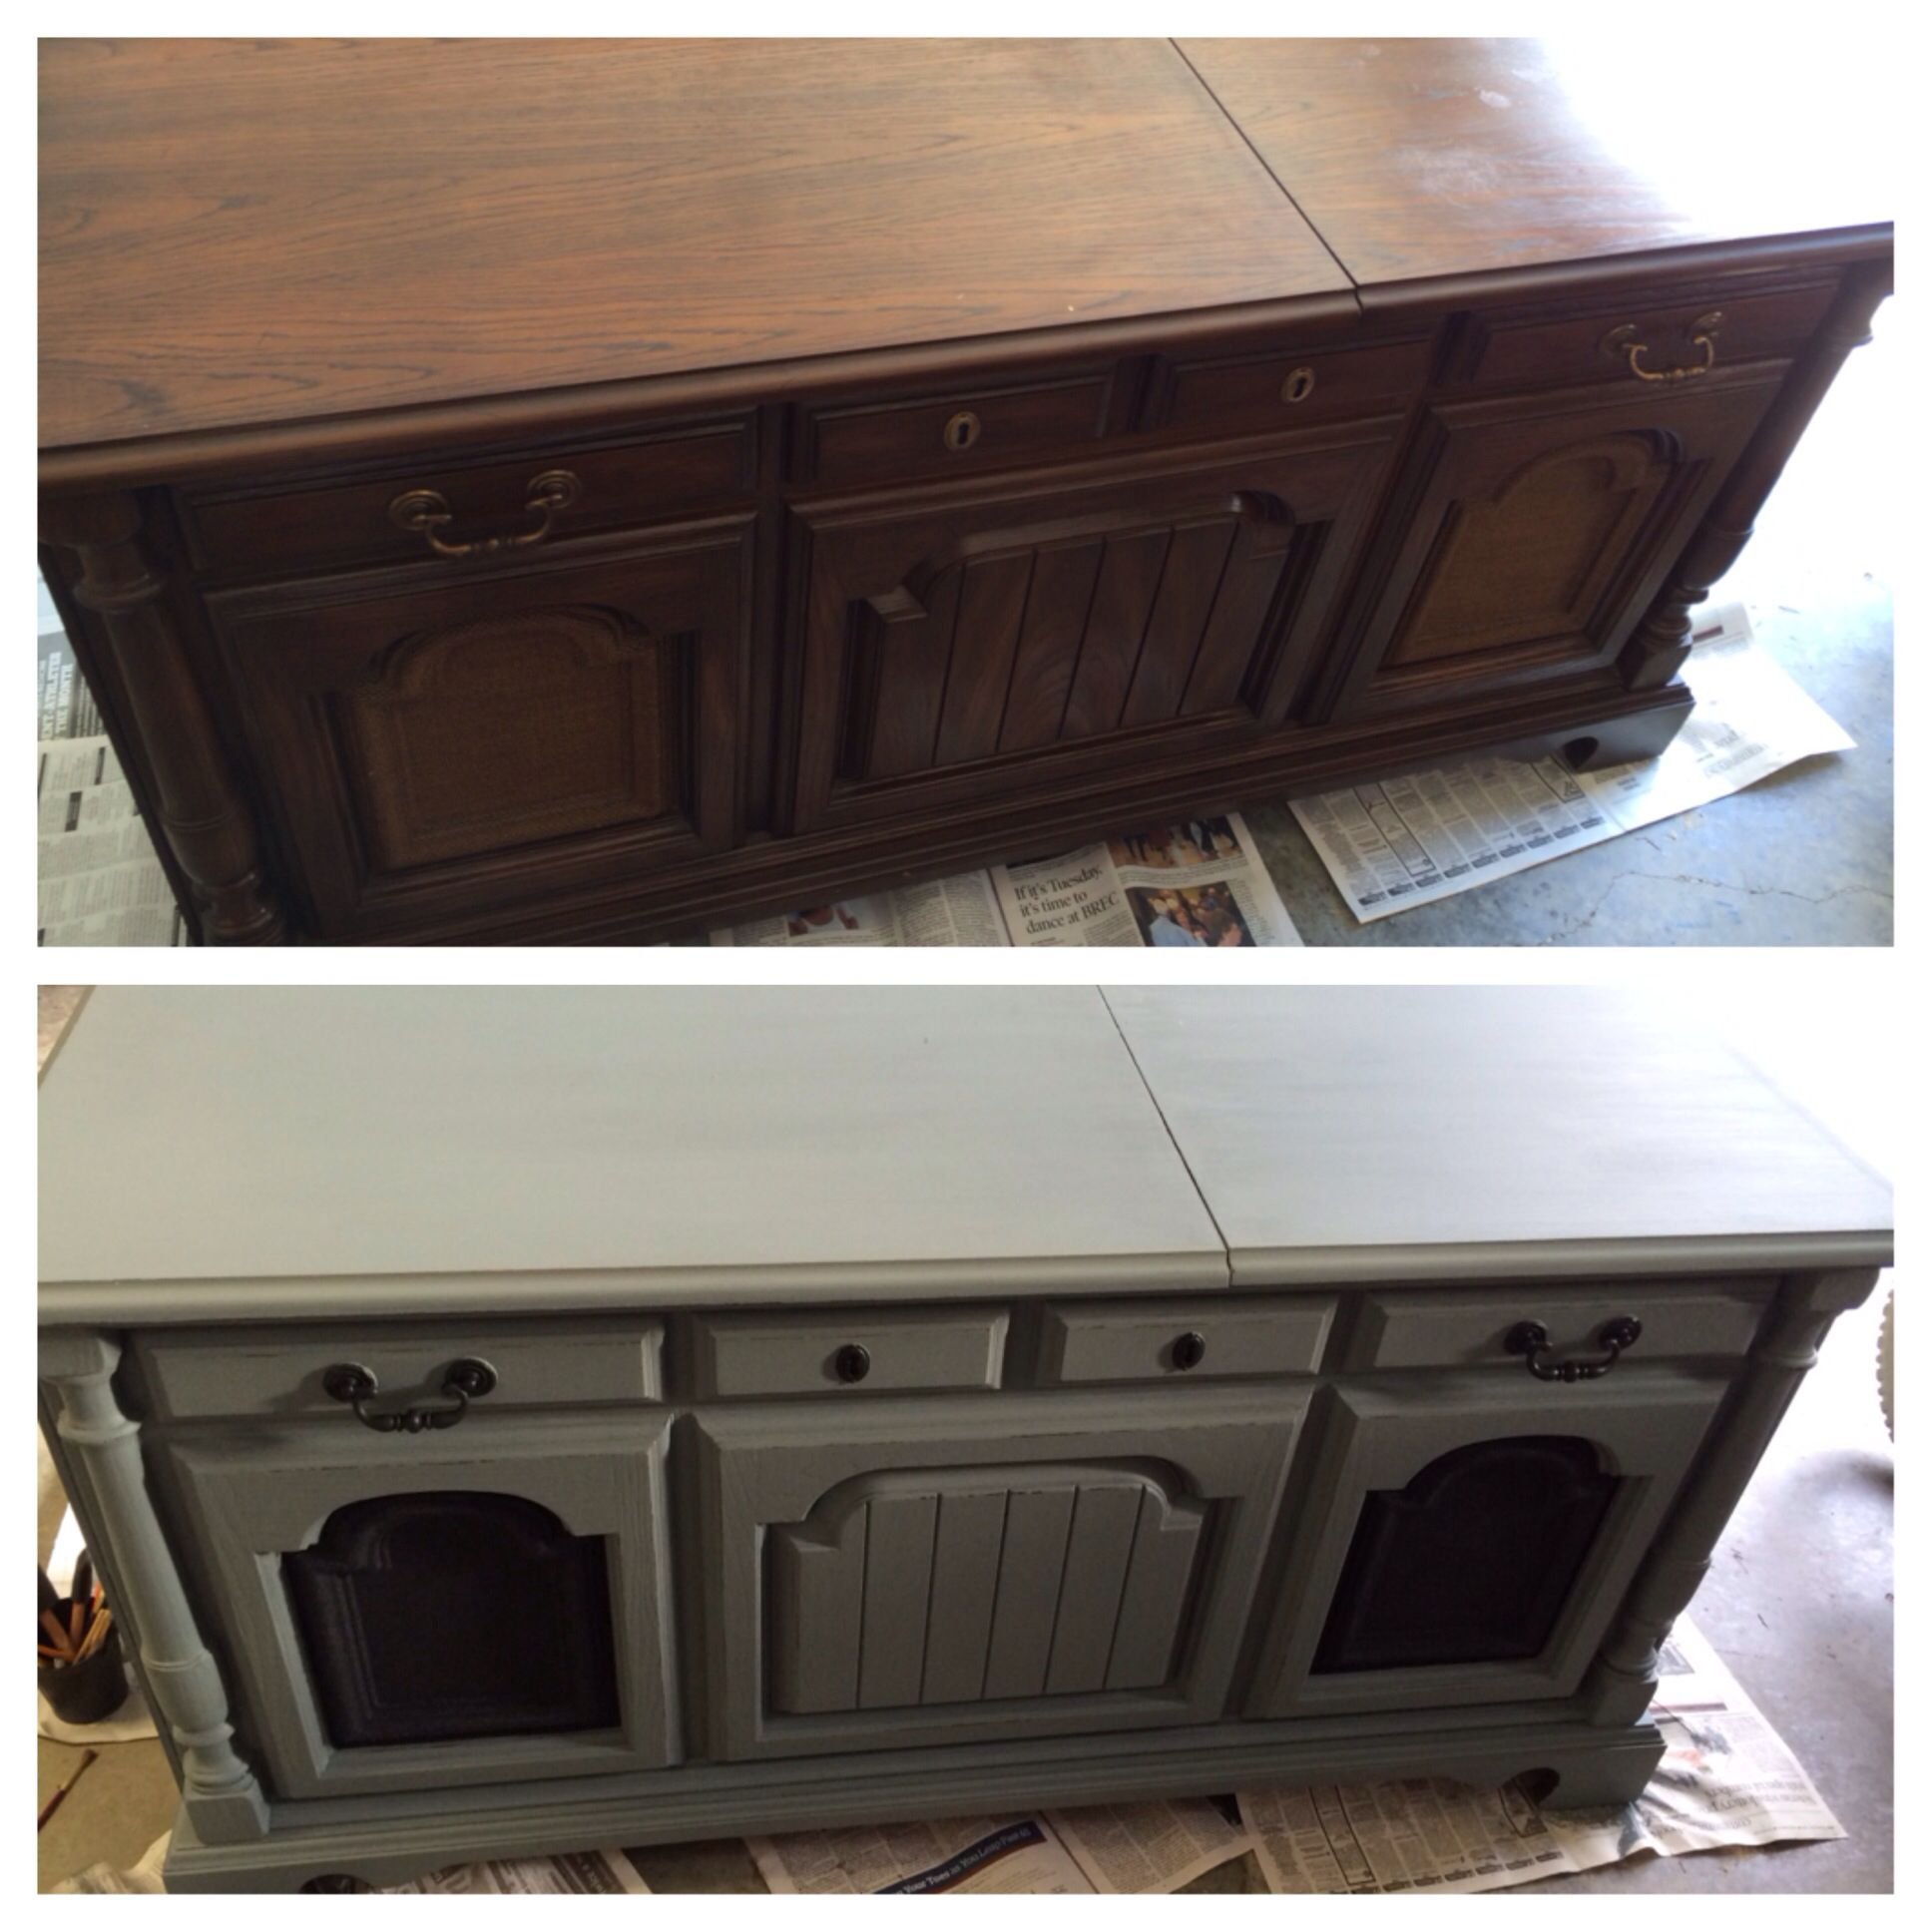 Old Record Player In Console Refurbished With Chalk Paint